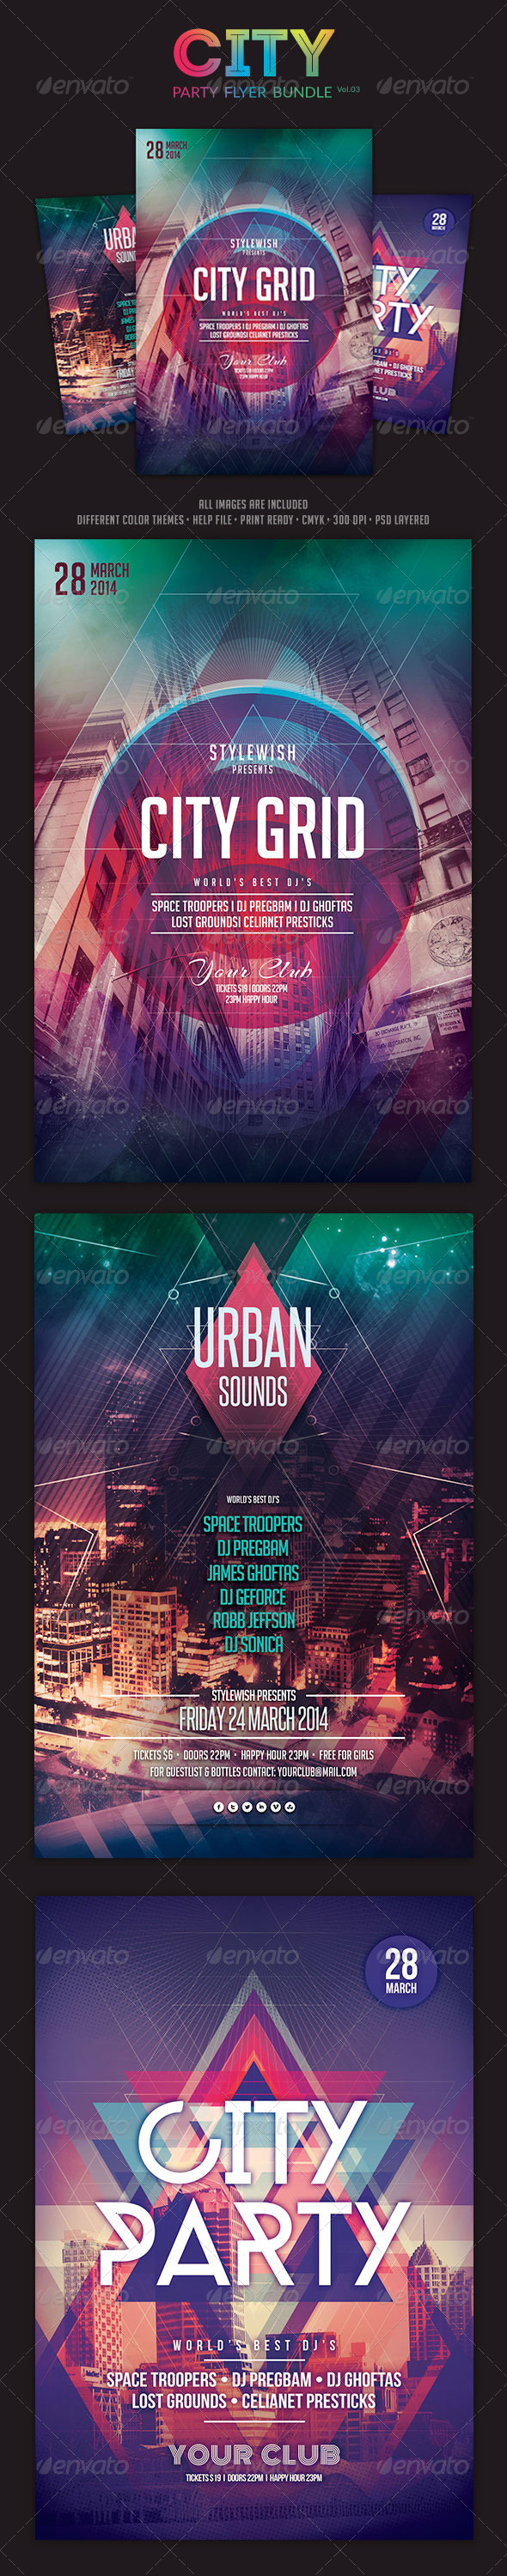 City Party Flyer Bundle Vol.03 - Clubs & Parties Events